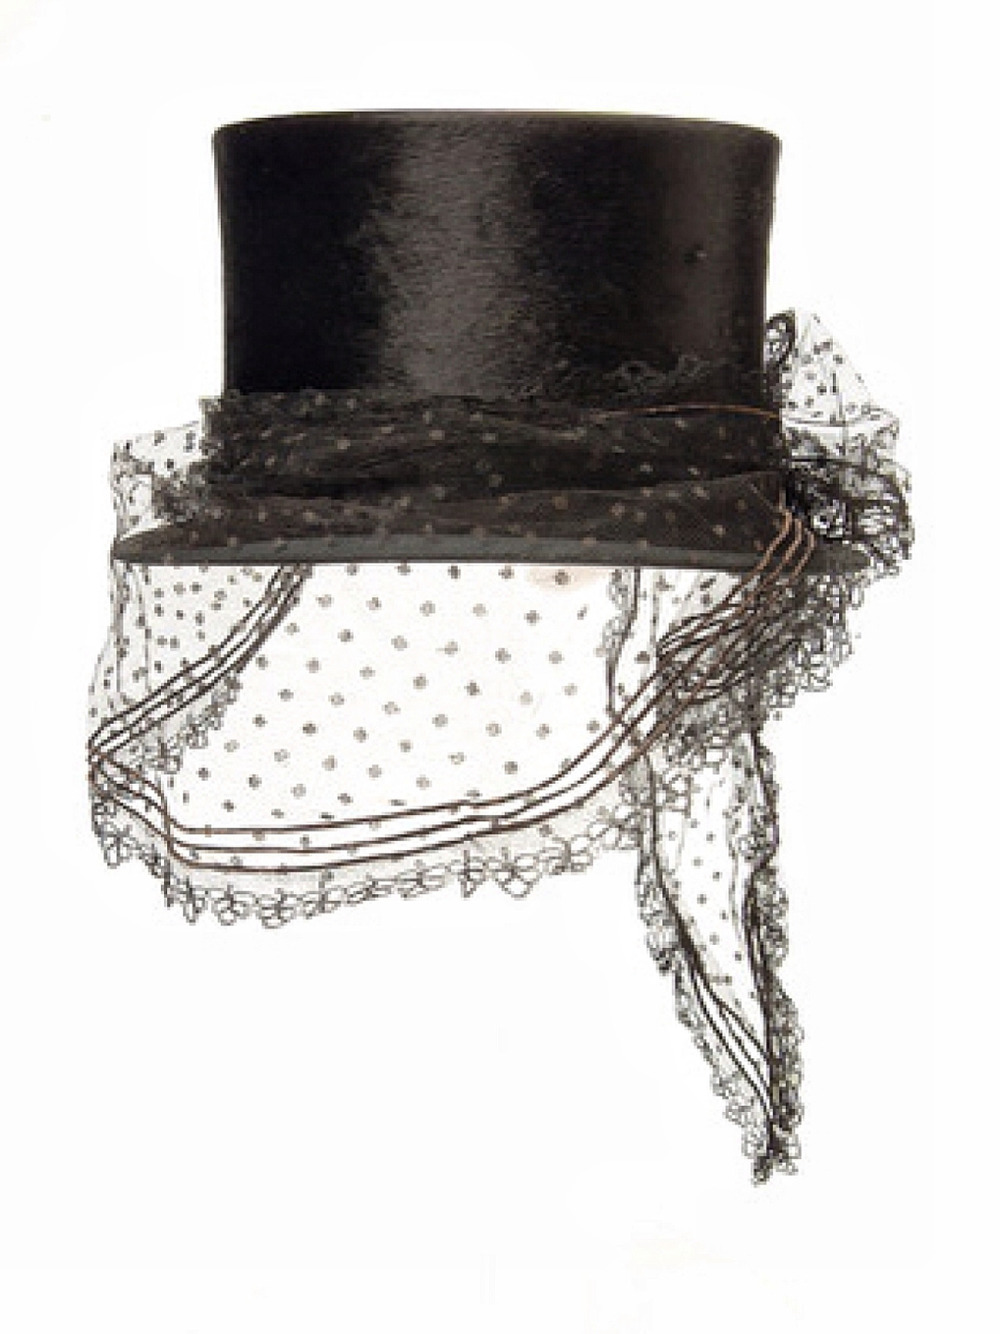 thevintagethimble :       Riding Top Hat        Riding top hat. 1863 AD - 1865 AD. Beaver felt riding hat with a lace veil, dated c. 1864. This hat was retailed by W.C. Taylor. |  Museum Of London